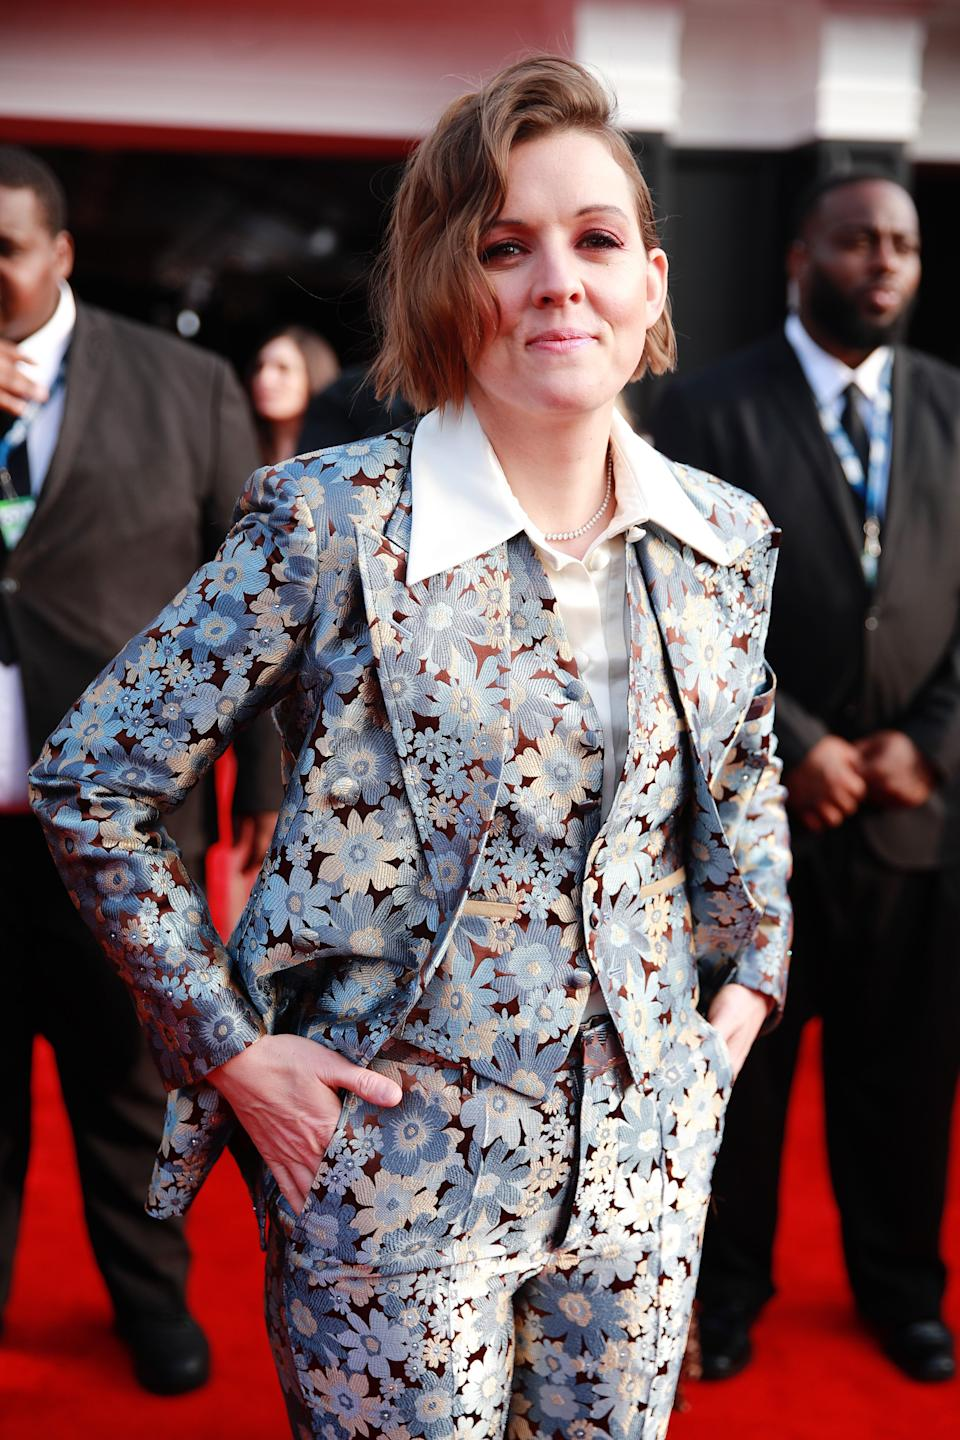 There should be at last one floral three-piece suit at every awards show.